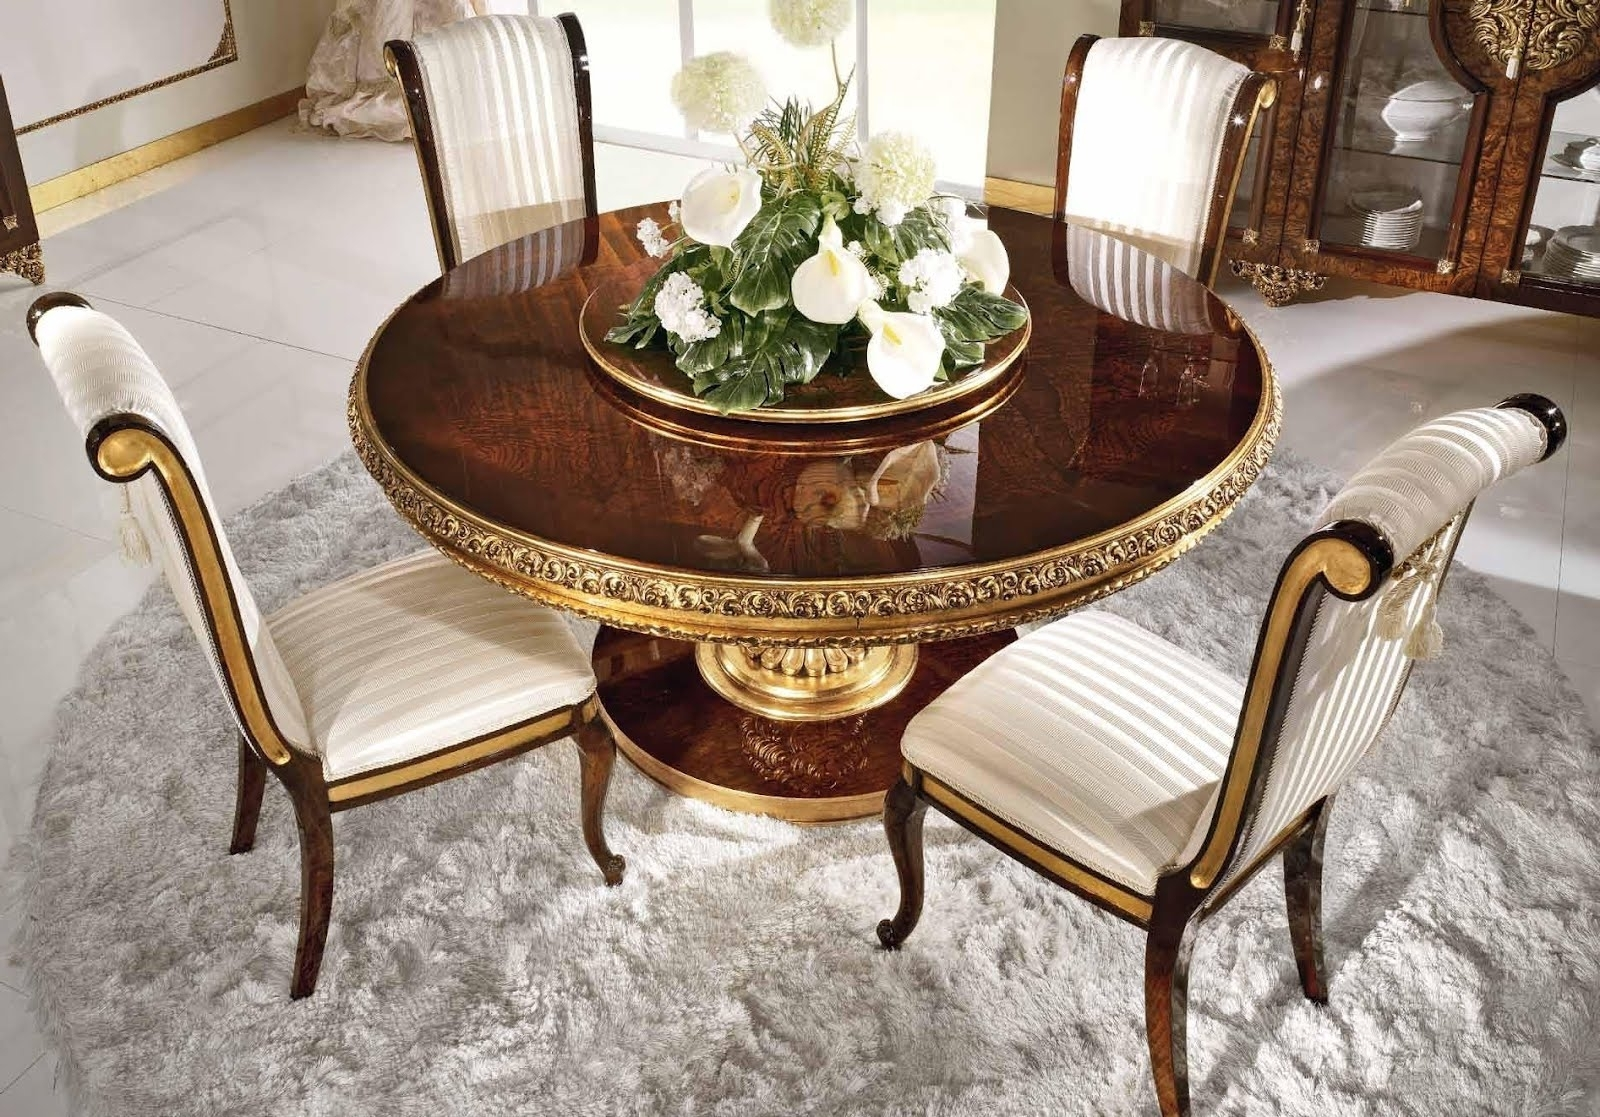 Royal Dining Tables For Well Known Antique & French Furniture : Royal Round Dining Table In Classic Style (View 18 of 25)